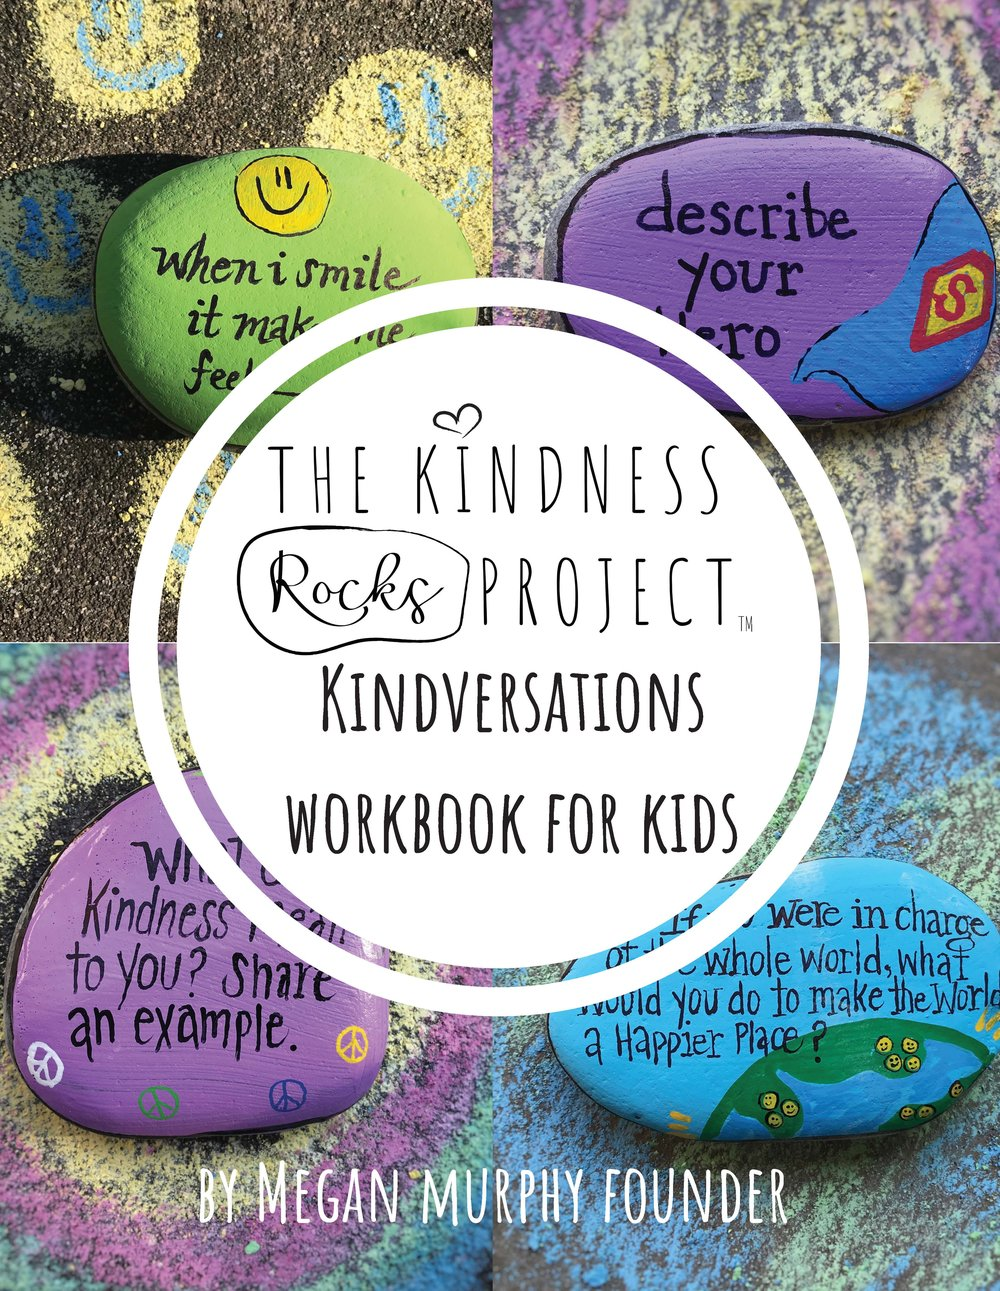 This new workbook to help inspire kids to have kind conversations.